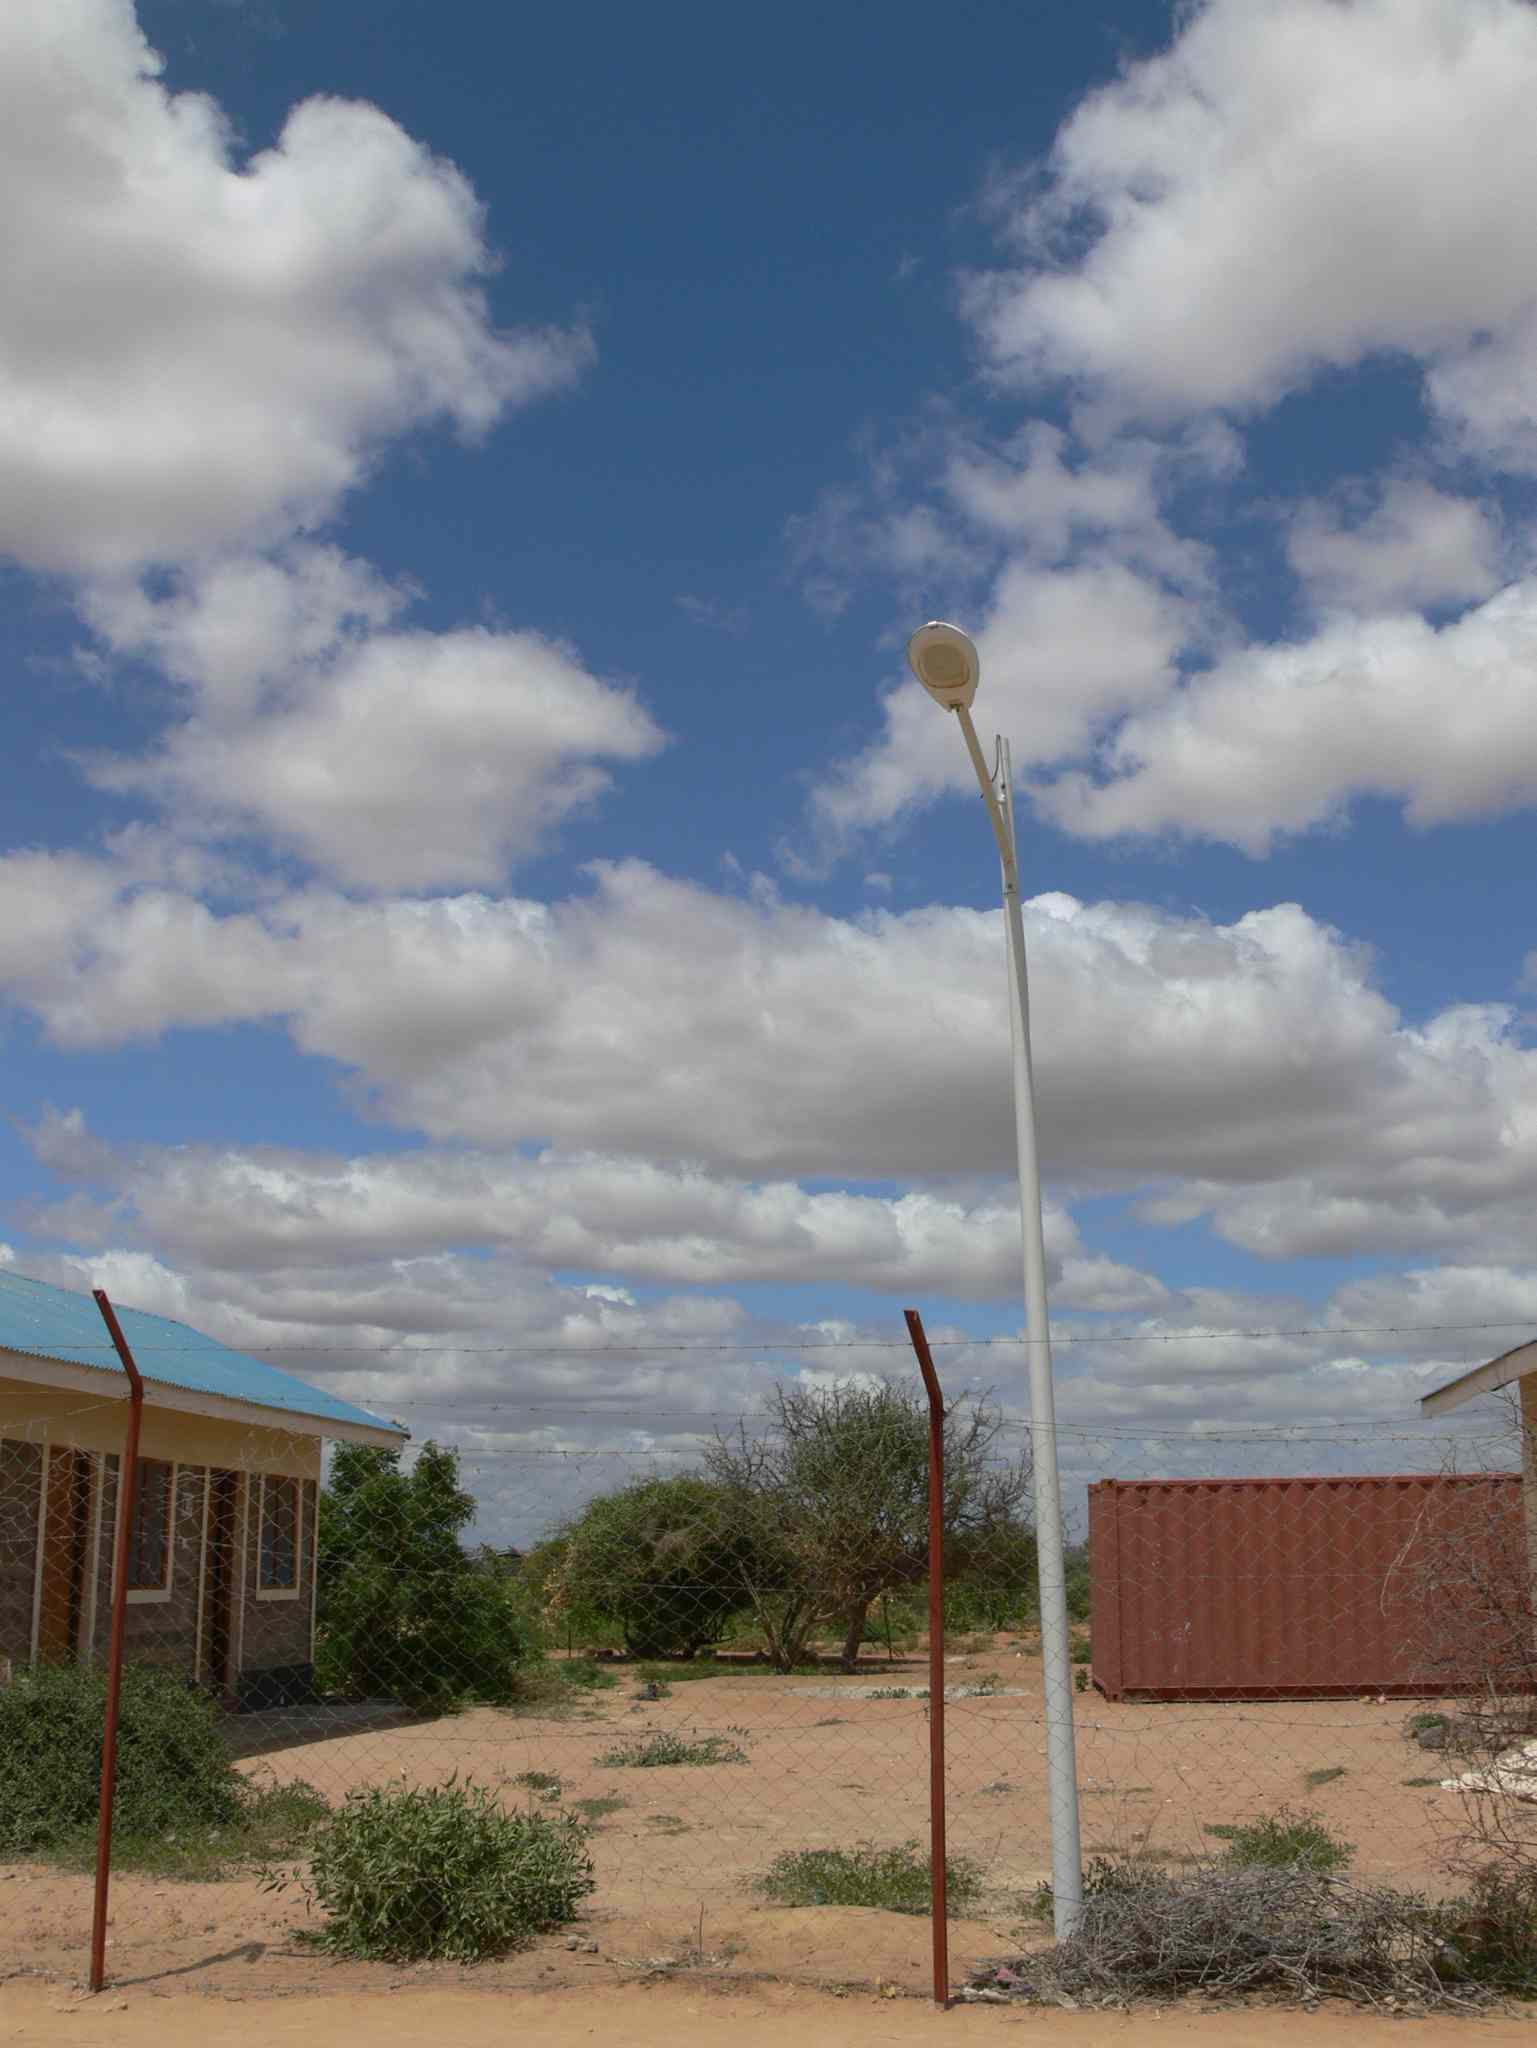 One of the solar-powered street lights paid for by the government of Canada at Ifo 2 refugee camp. The street lights are helping the security situation at the refugee camps in Dadaab.